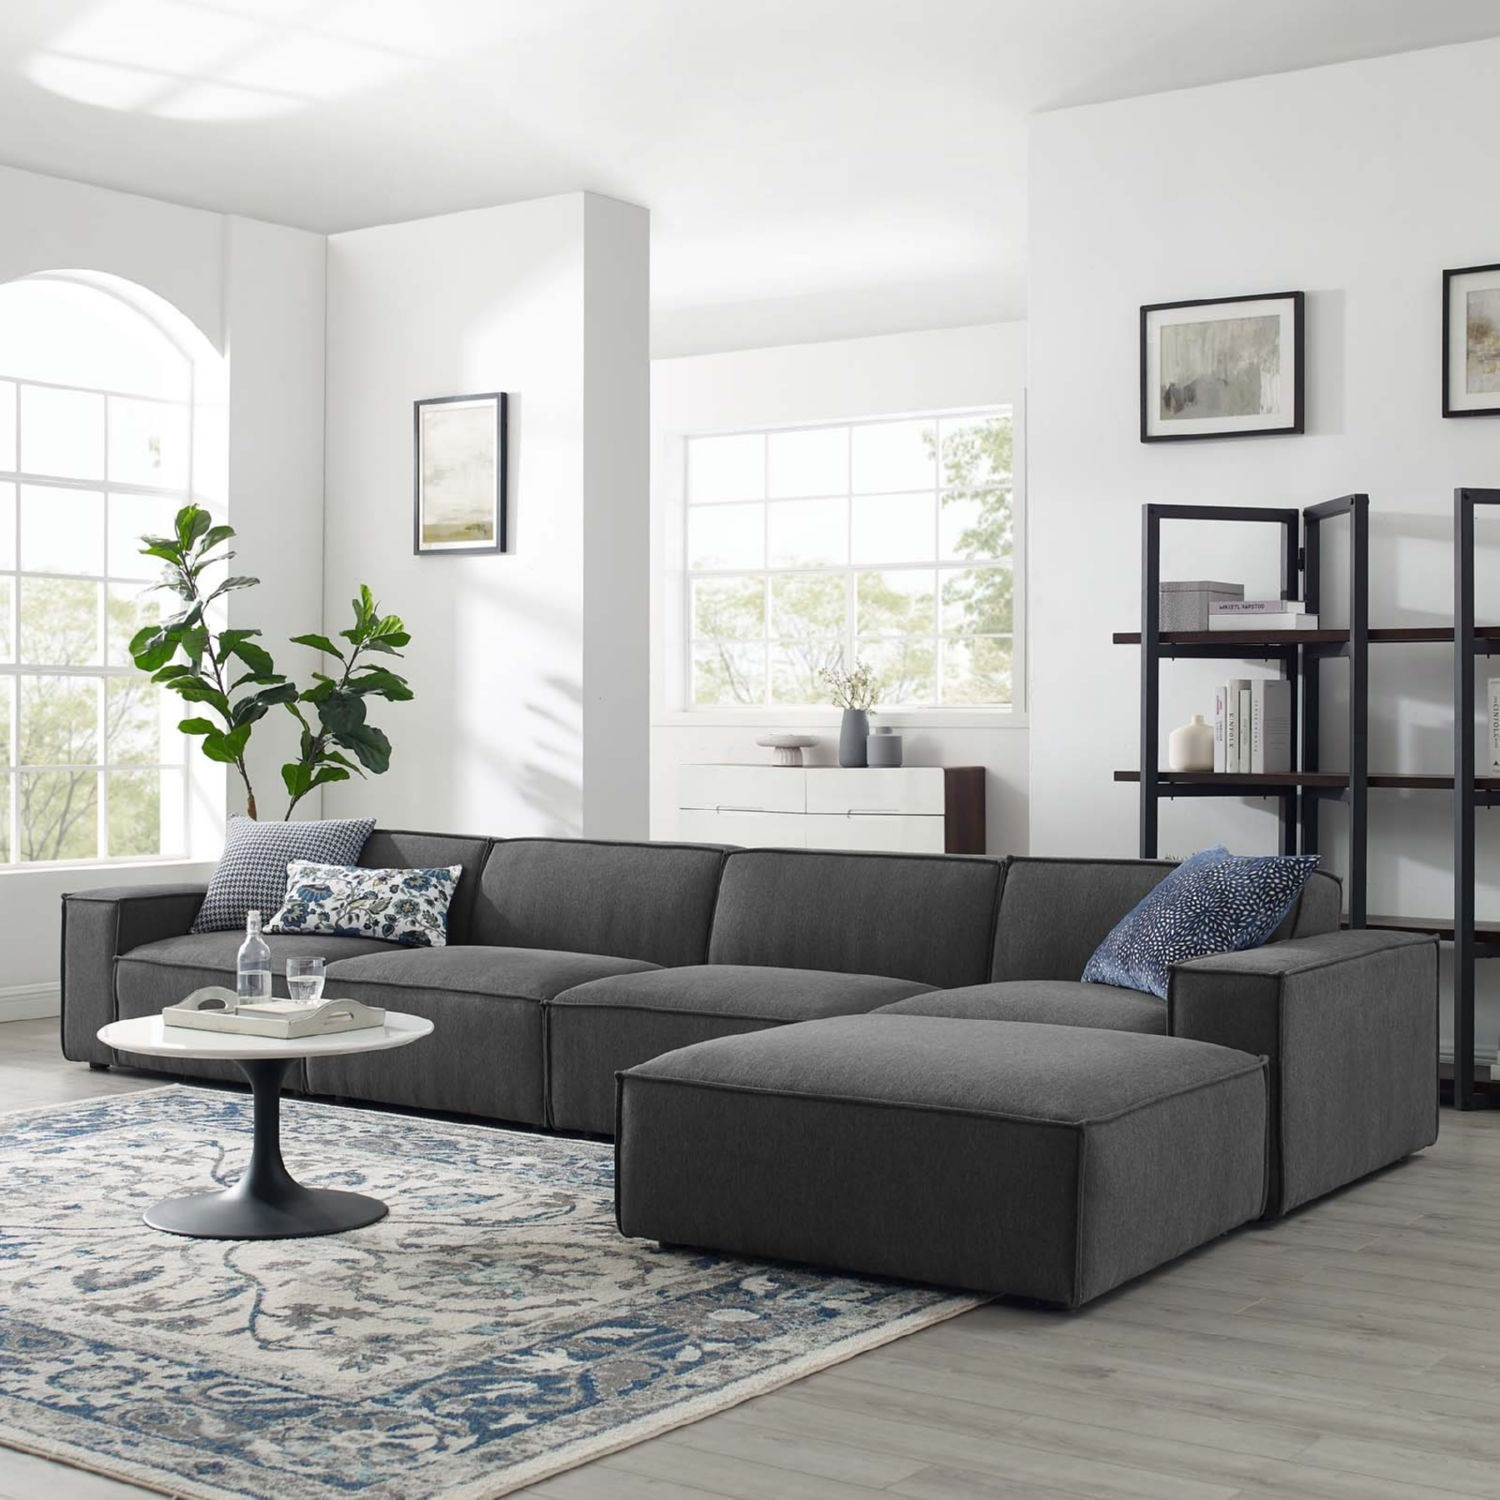 5-Piece Sectional Sofa In Charcoal Fabric - image-10